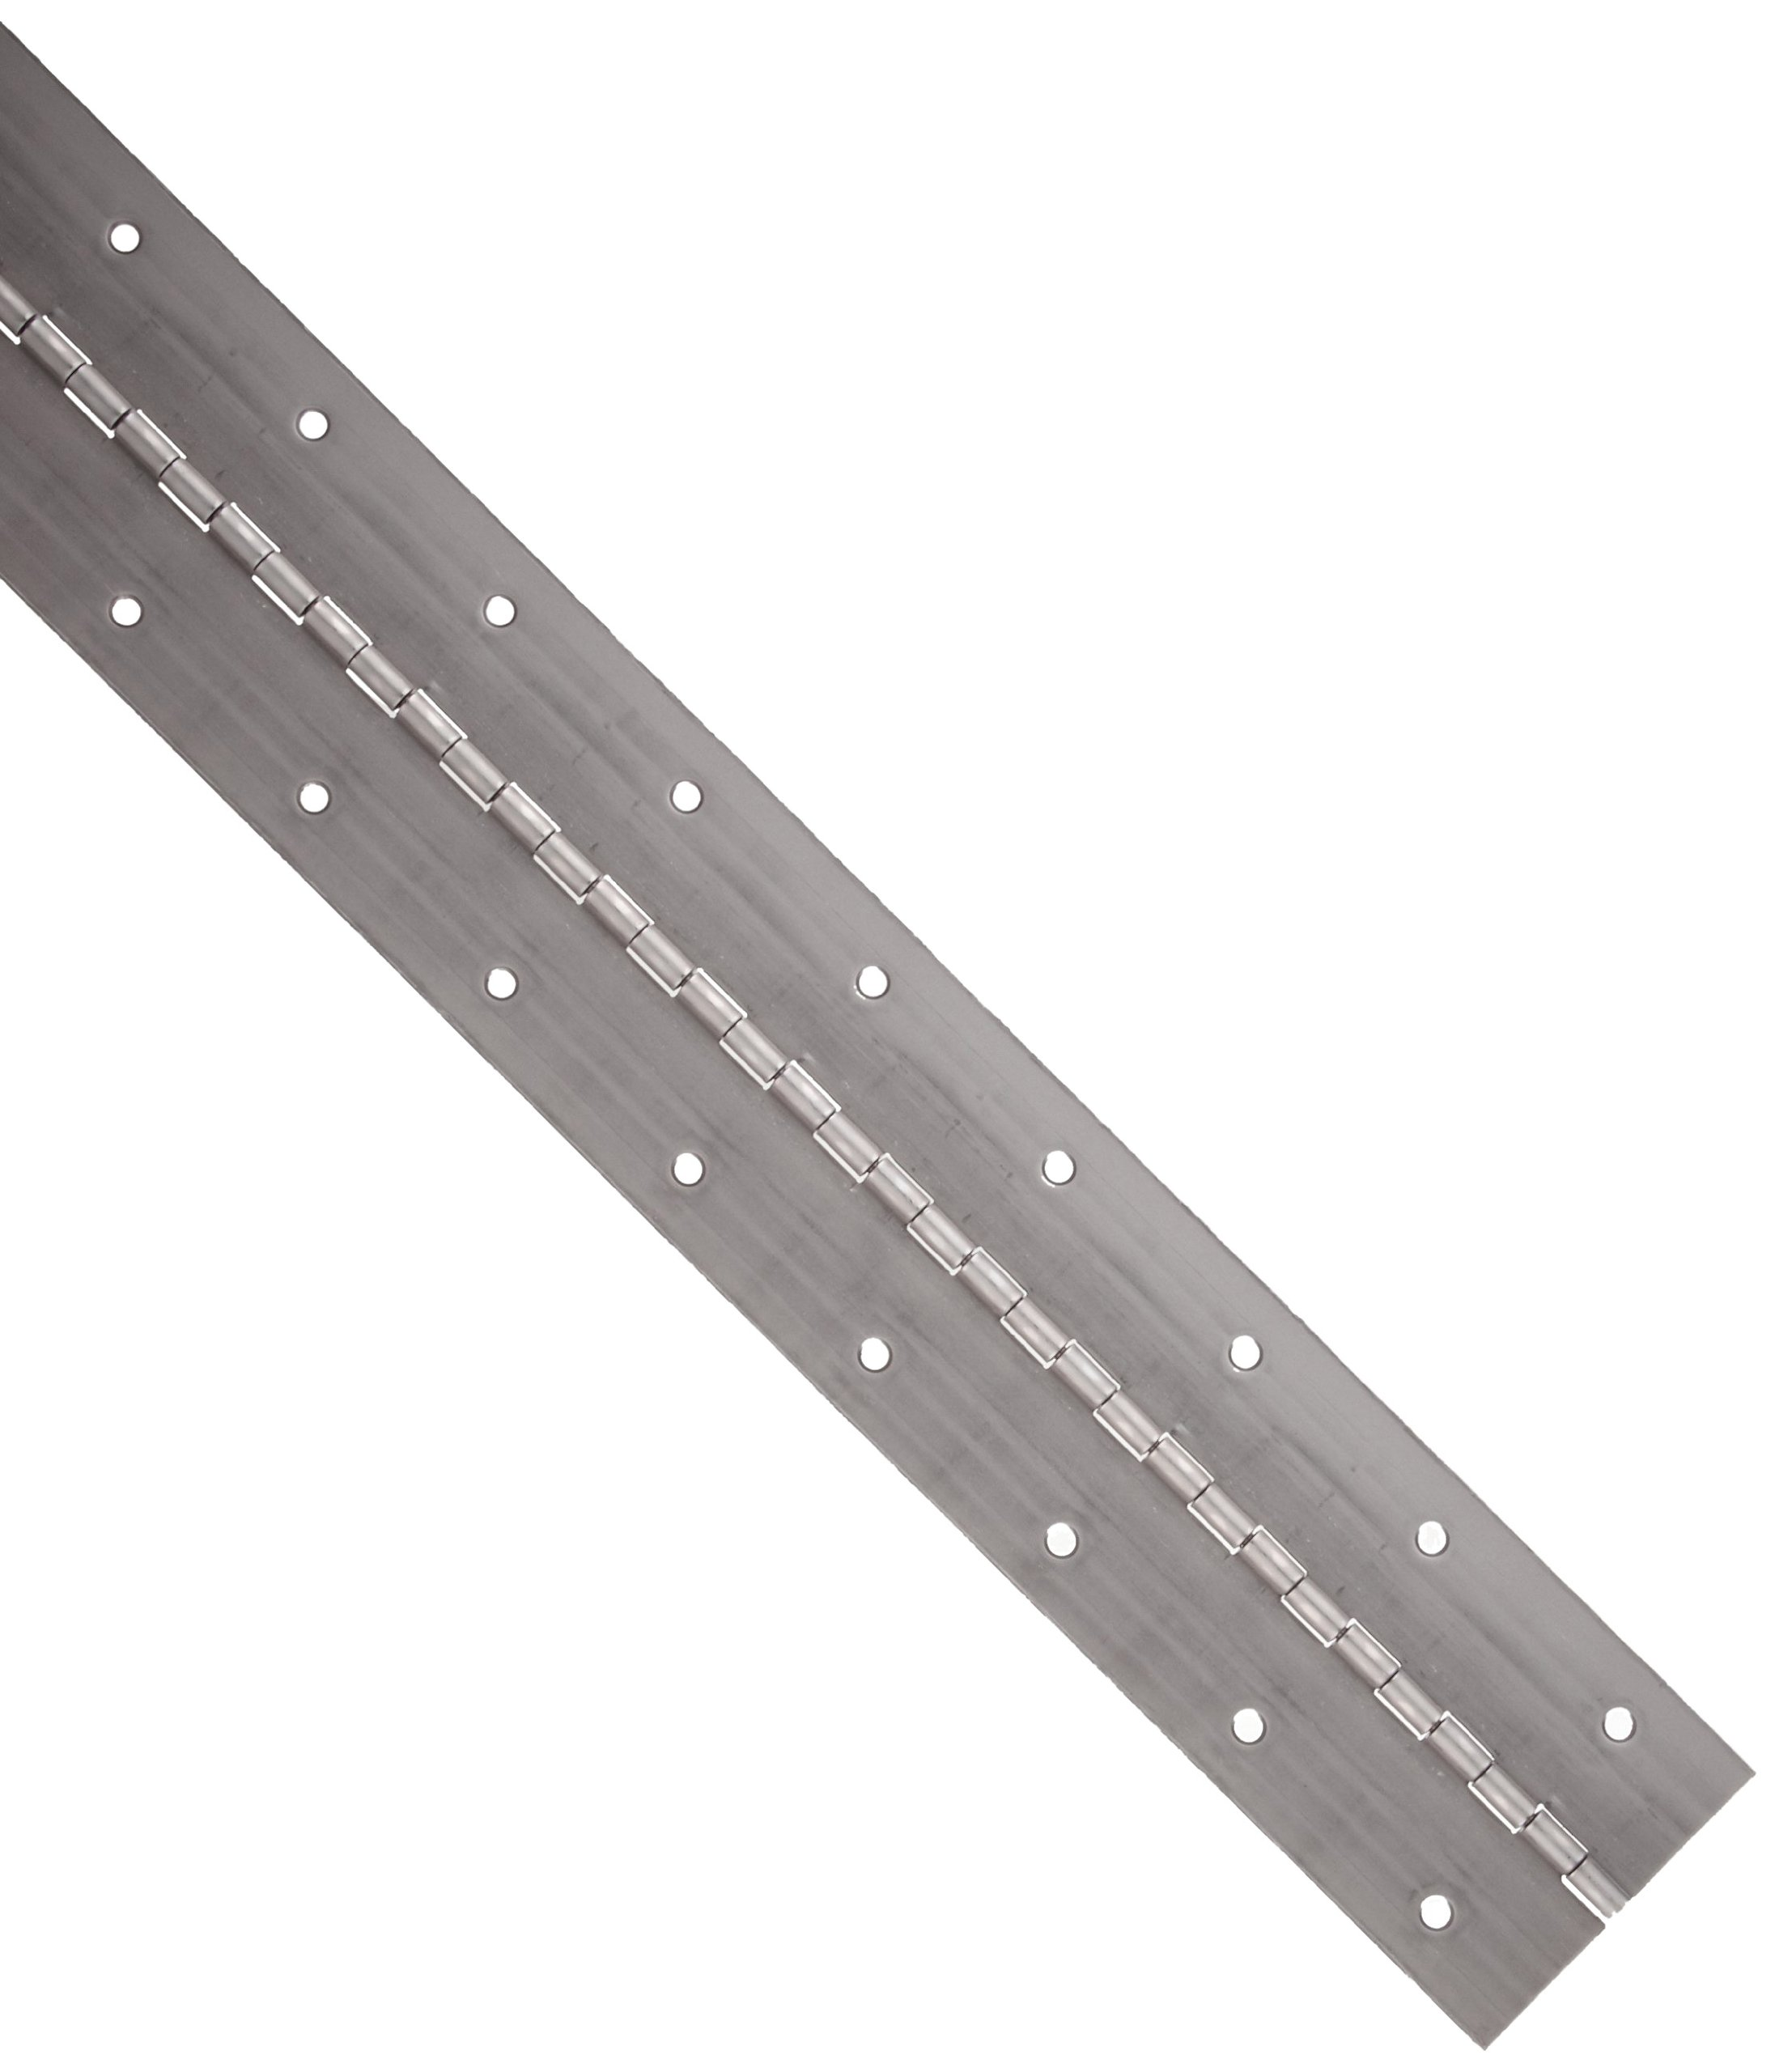 Steel Plain Continuous Hinge with Holes, Unfinished, 0.06'' Leaf Thickness, 2'' Open Width, 1/8'' Pin Diameter, 1/2'' Knuckle Length, 4' Long (Pack of 1)